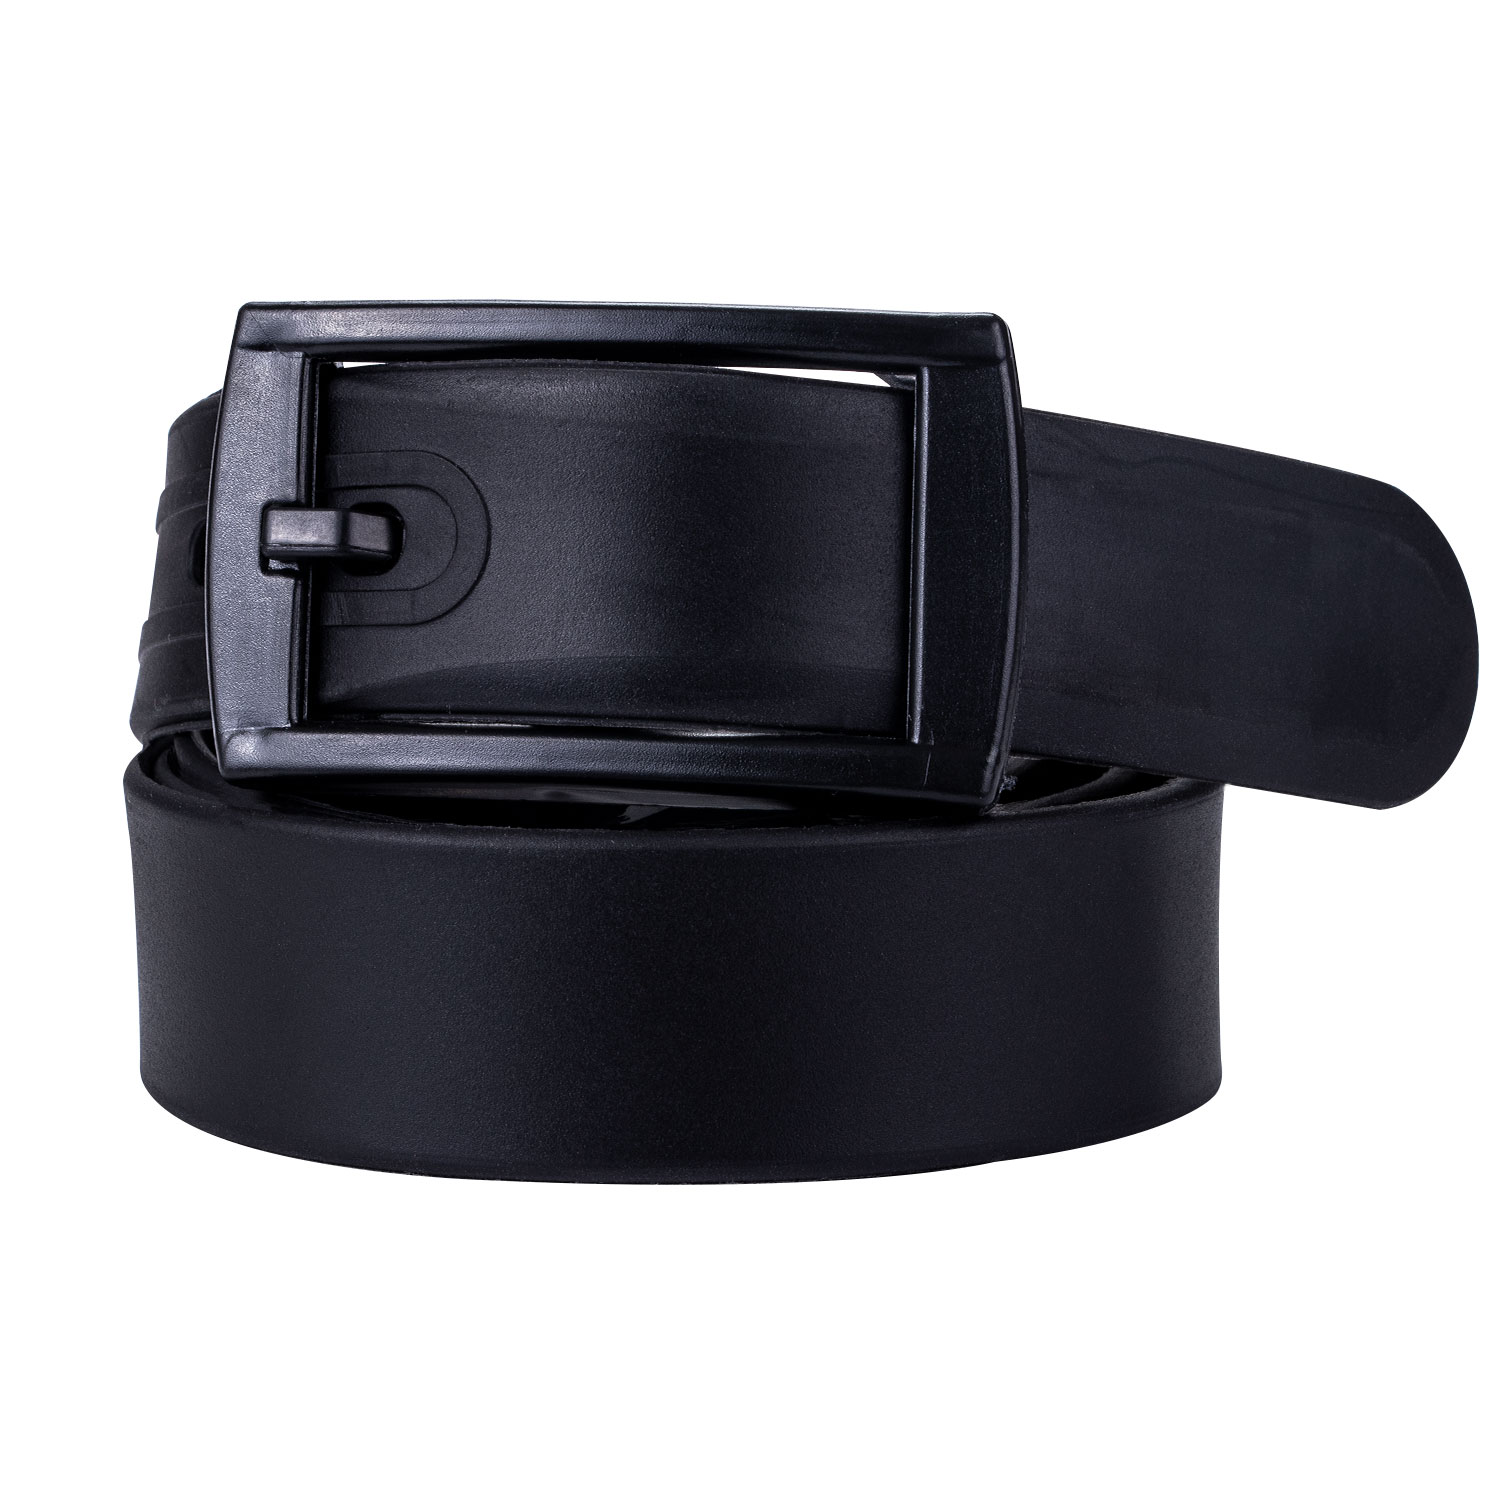 Silicone Rubber Leather Belt Smooth Buckle black